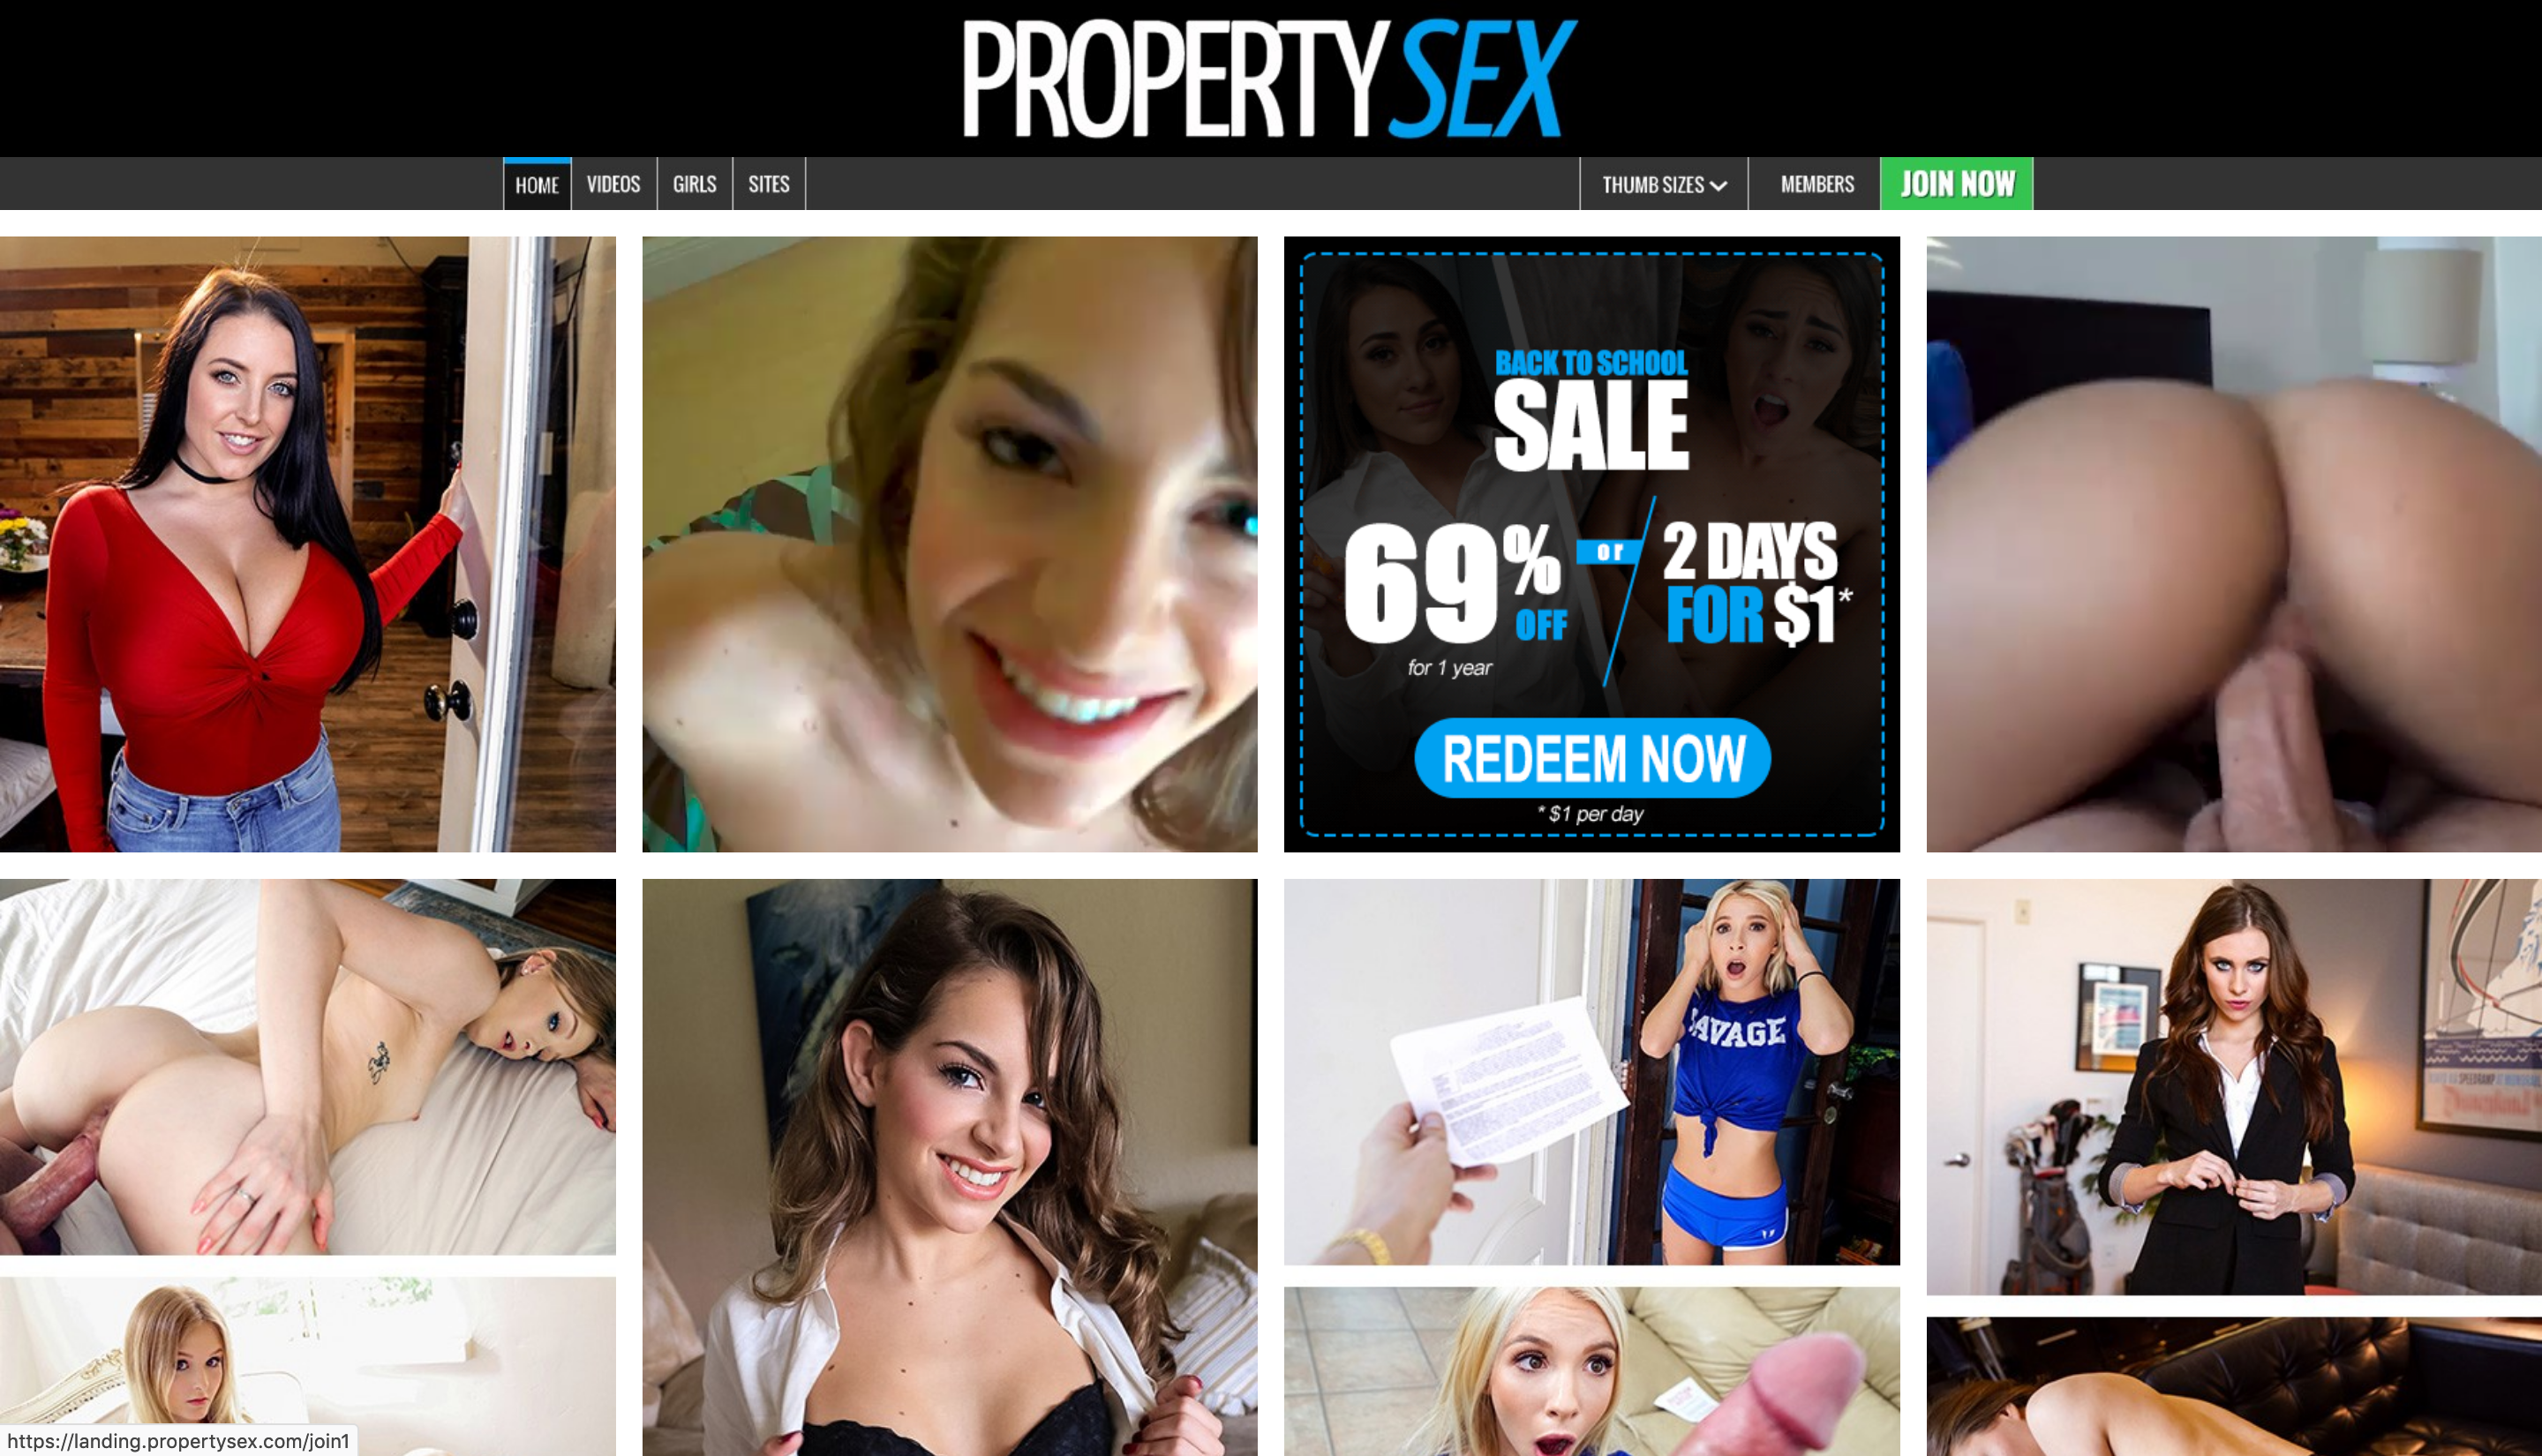 PropertySex: who has never dreamed of fucking the real estate agent? On this site you can find a large selection of premium HD videos where horny real estate agents get fucked by their customers in other people's homes. Huge cocks come into the narrow vaginas of these beautiful MILFs. Maybe it's the only way they know to convince customers to buy houses. Who wouldn't buy a house after tasting the tits of these beautiful whore agents?